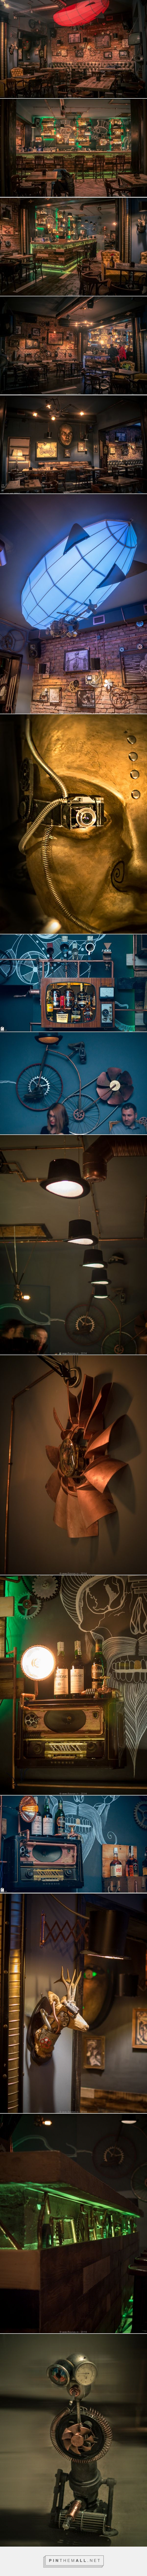 Welcome to Joben Bistro, a peculiar pub of steampunk inspiration, located in Cluj-Napoca, Romania. Embark yourself in a trip away from conventional design and discover the marvellous world of fiction.